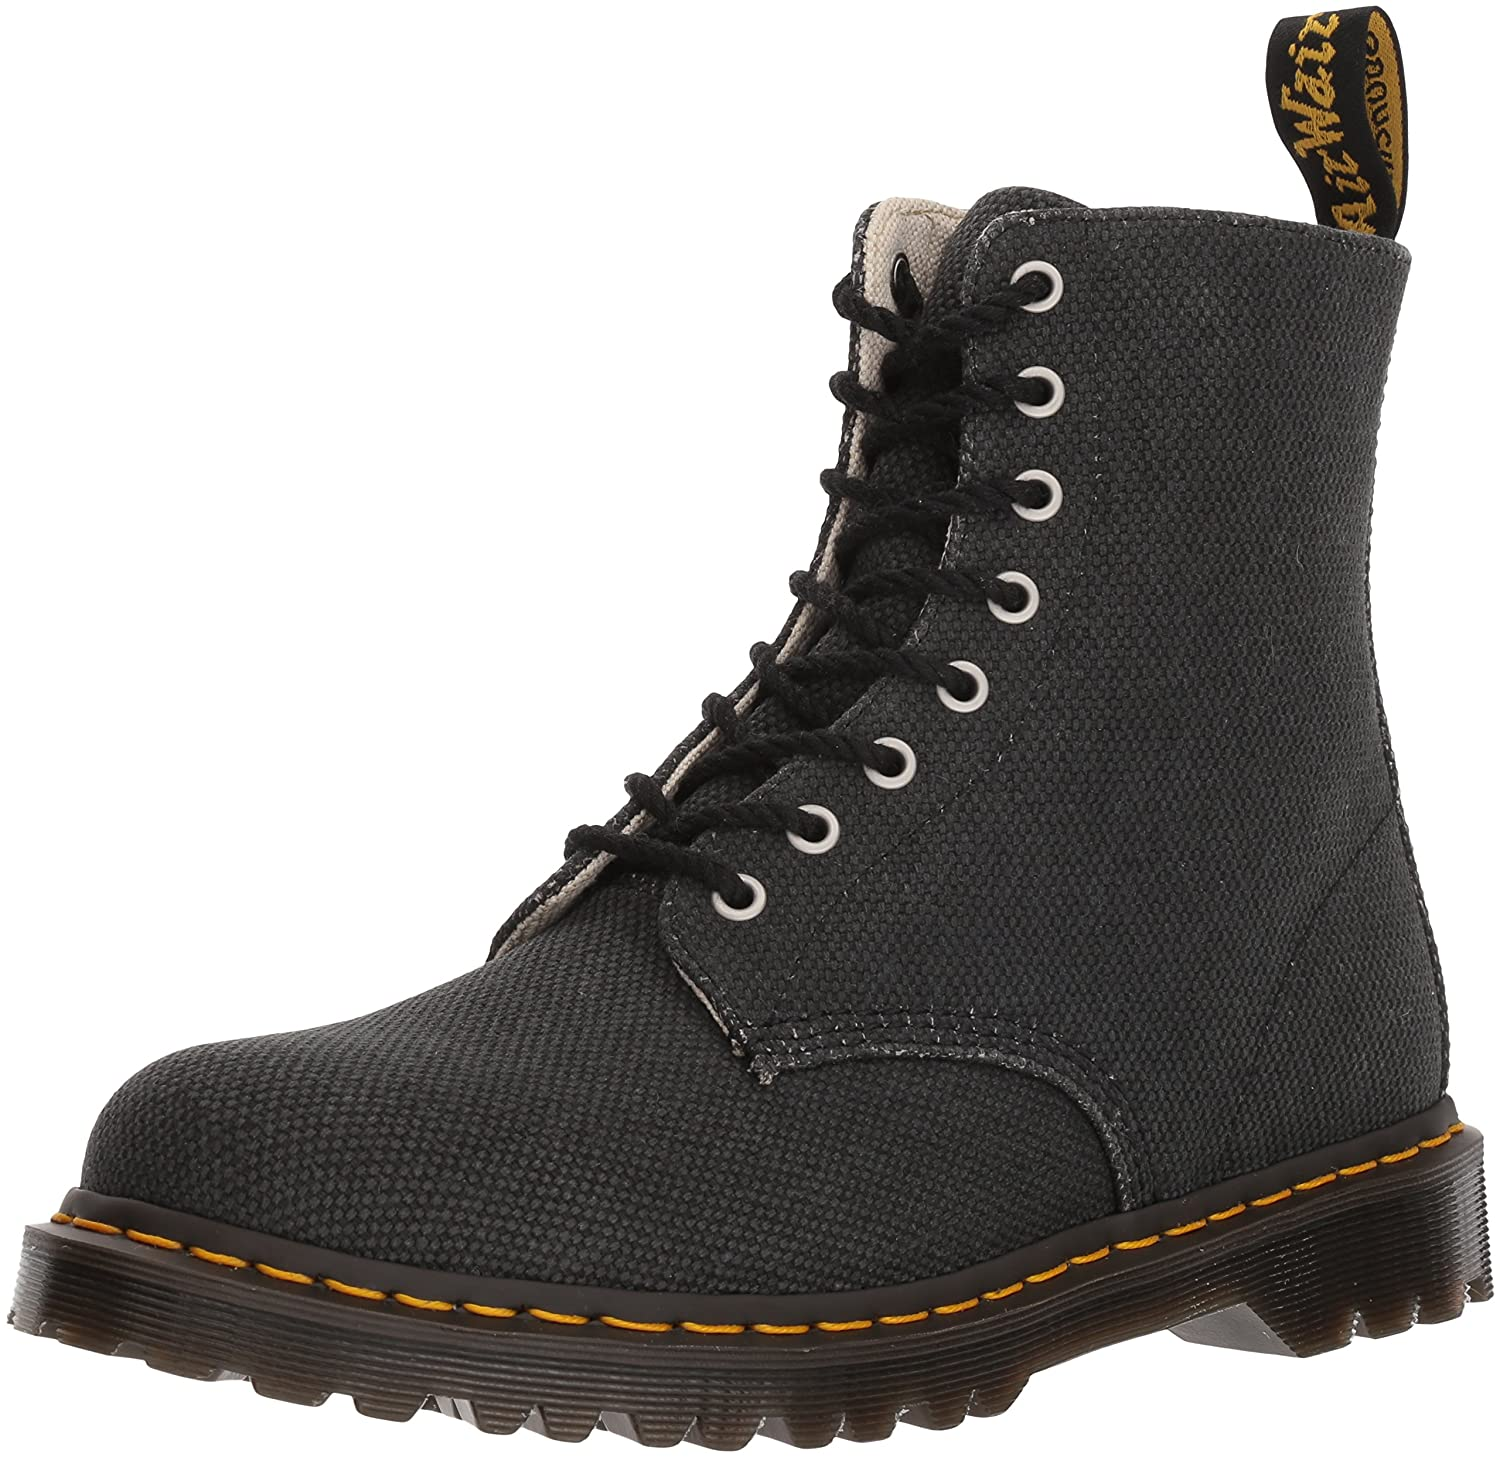 Dr. Martens Women's Black Military Canvas Pascal Fashion Boot